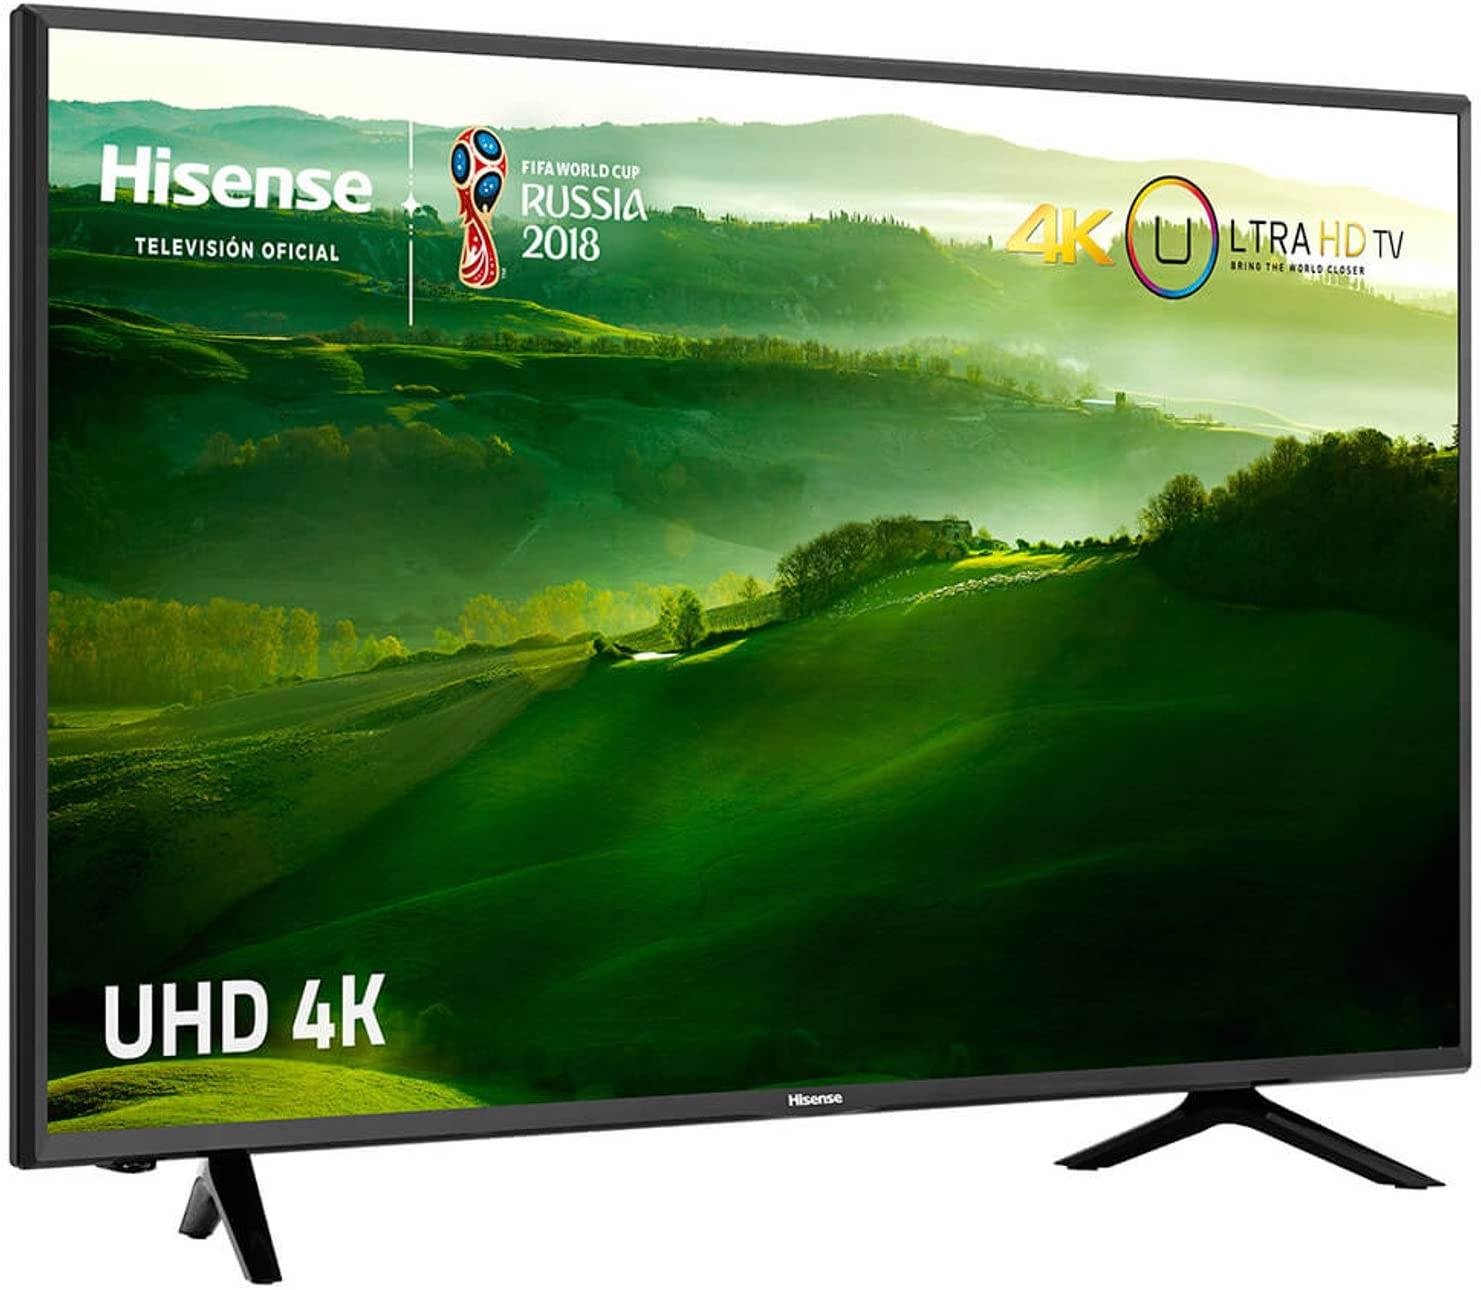 TV LED-LCD Hisense 139: 620.73: Amazon.es: Electrónica